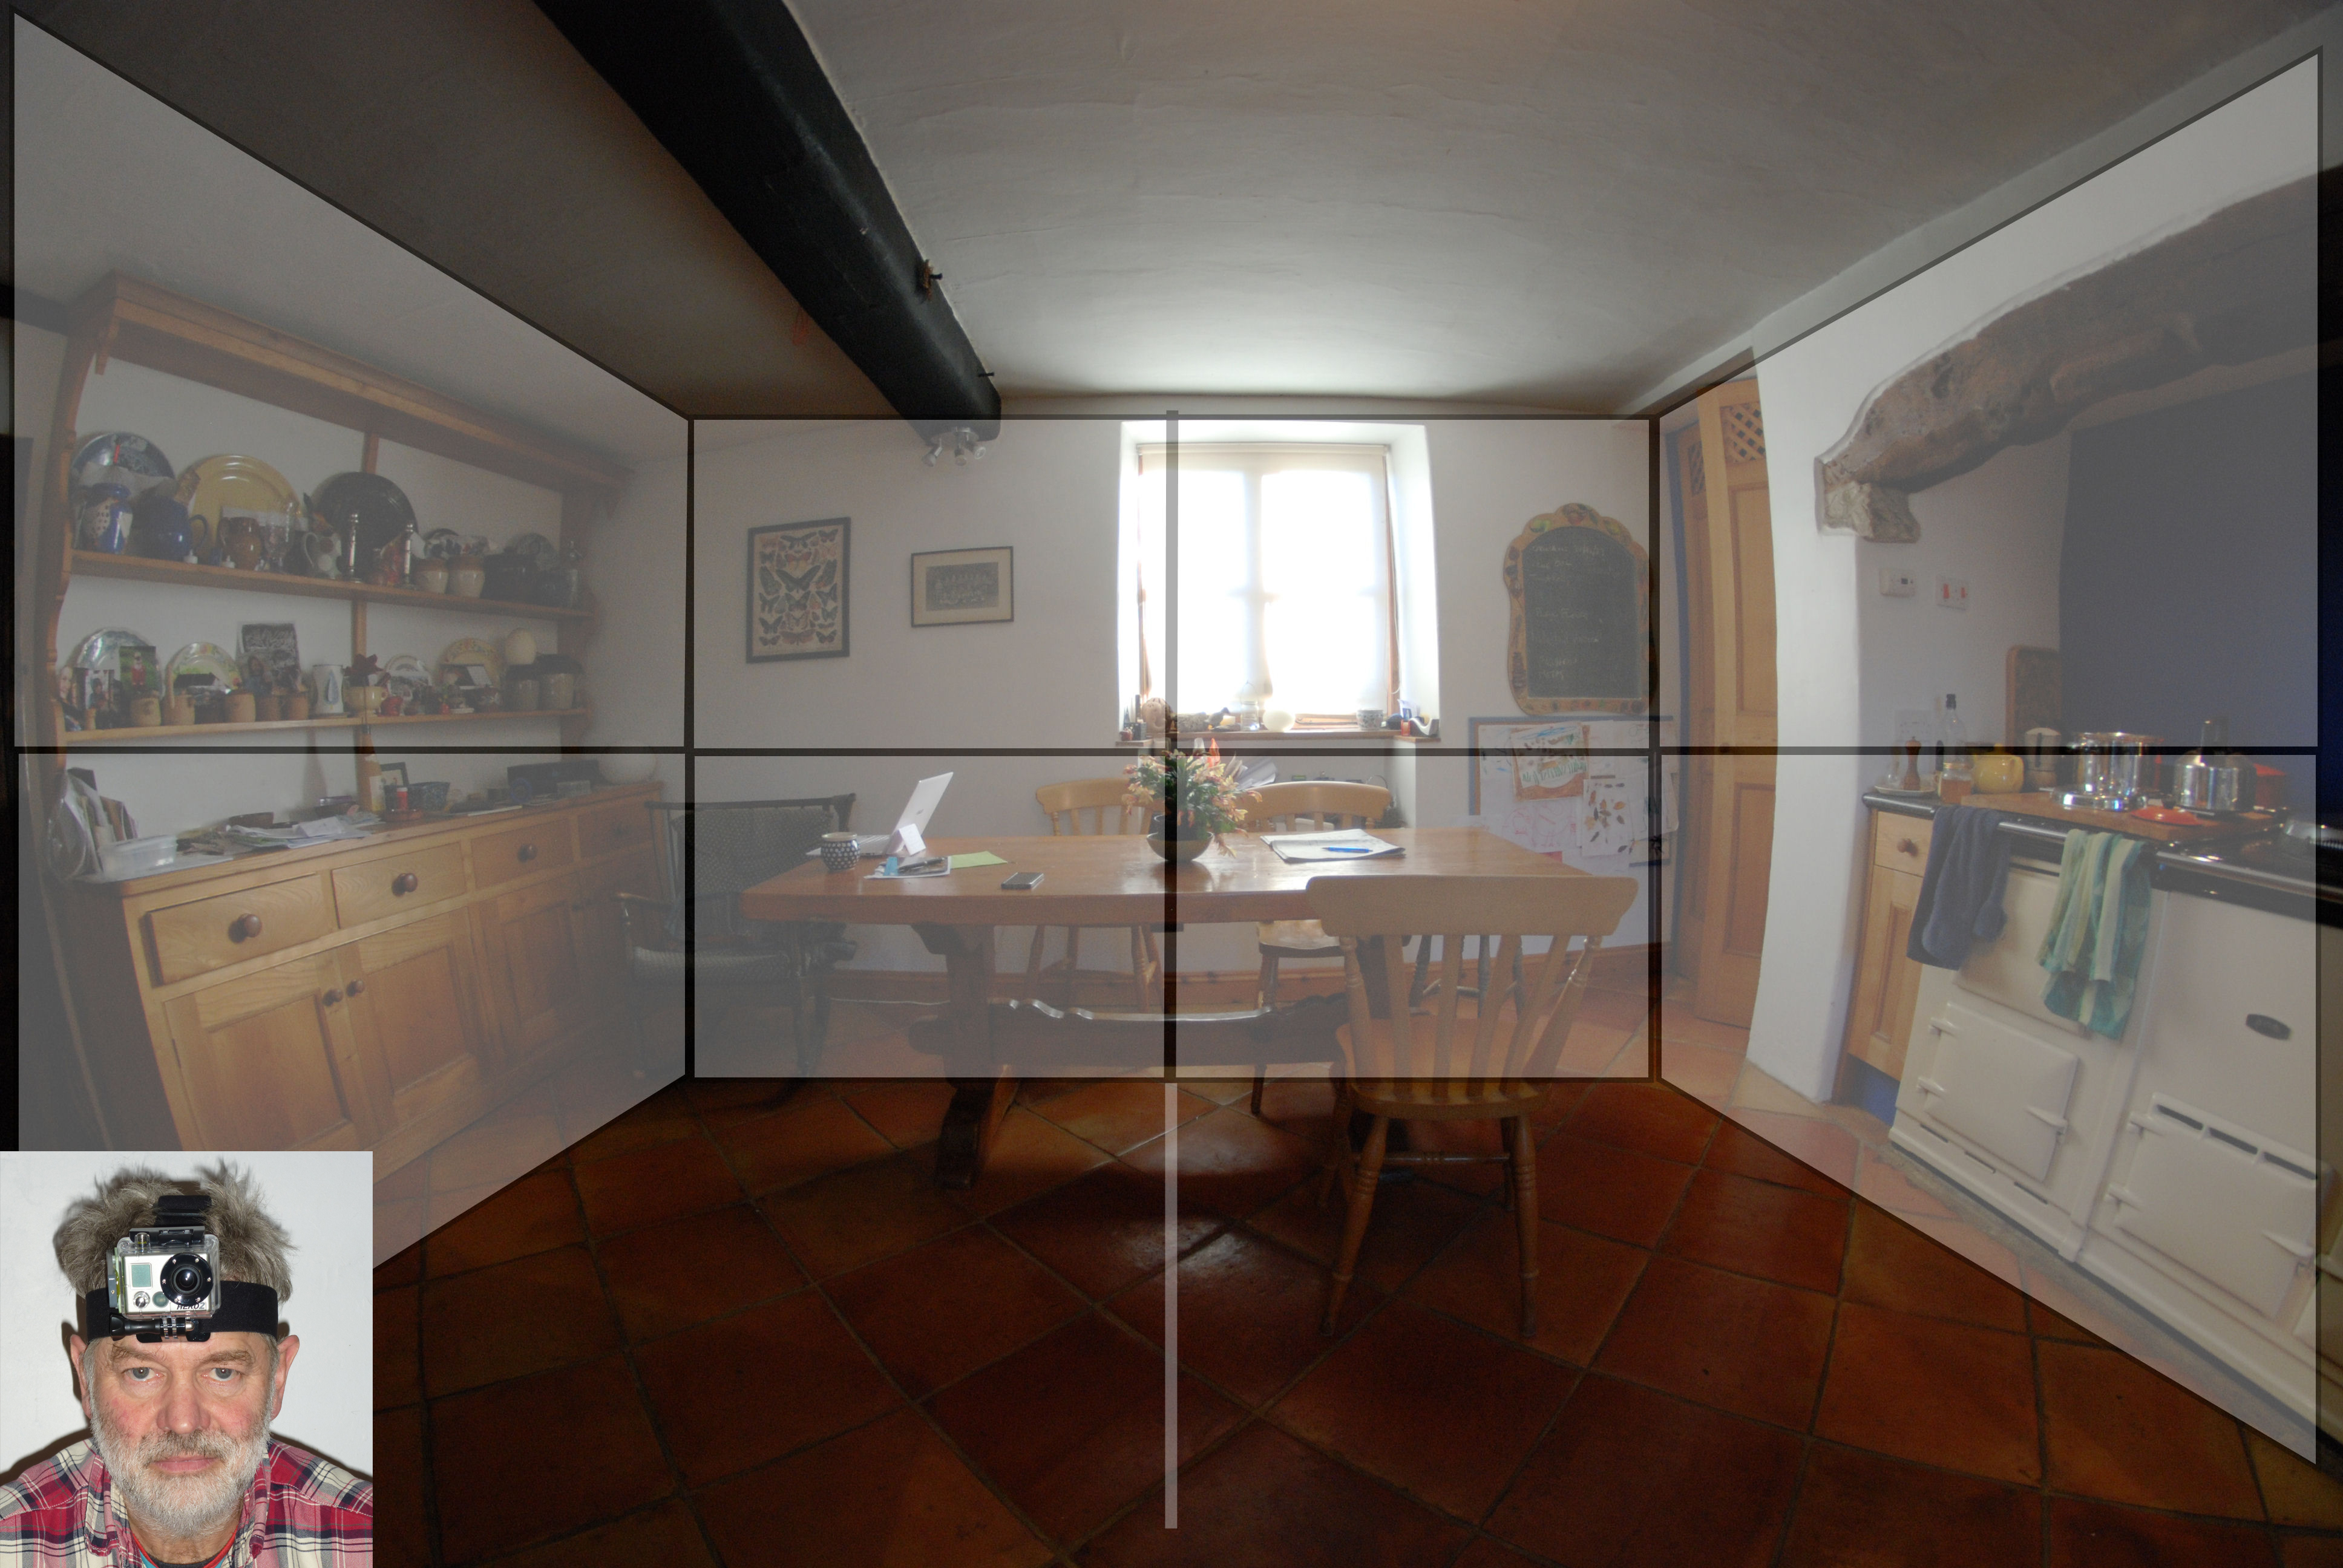 fig1 Kitchen view with inset.jpg